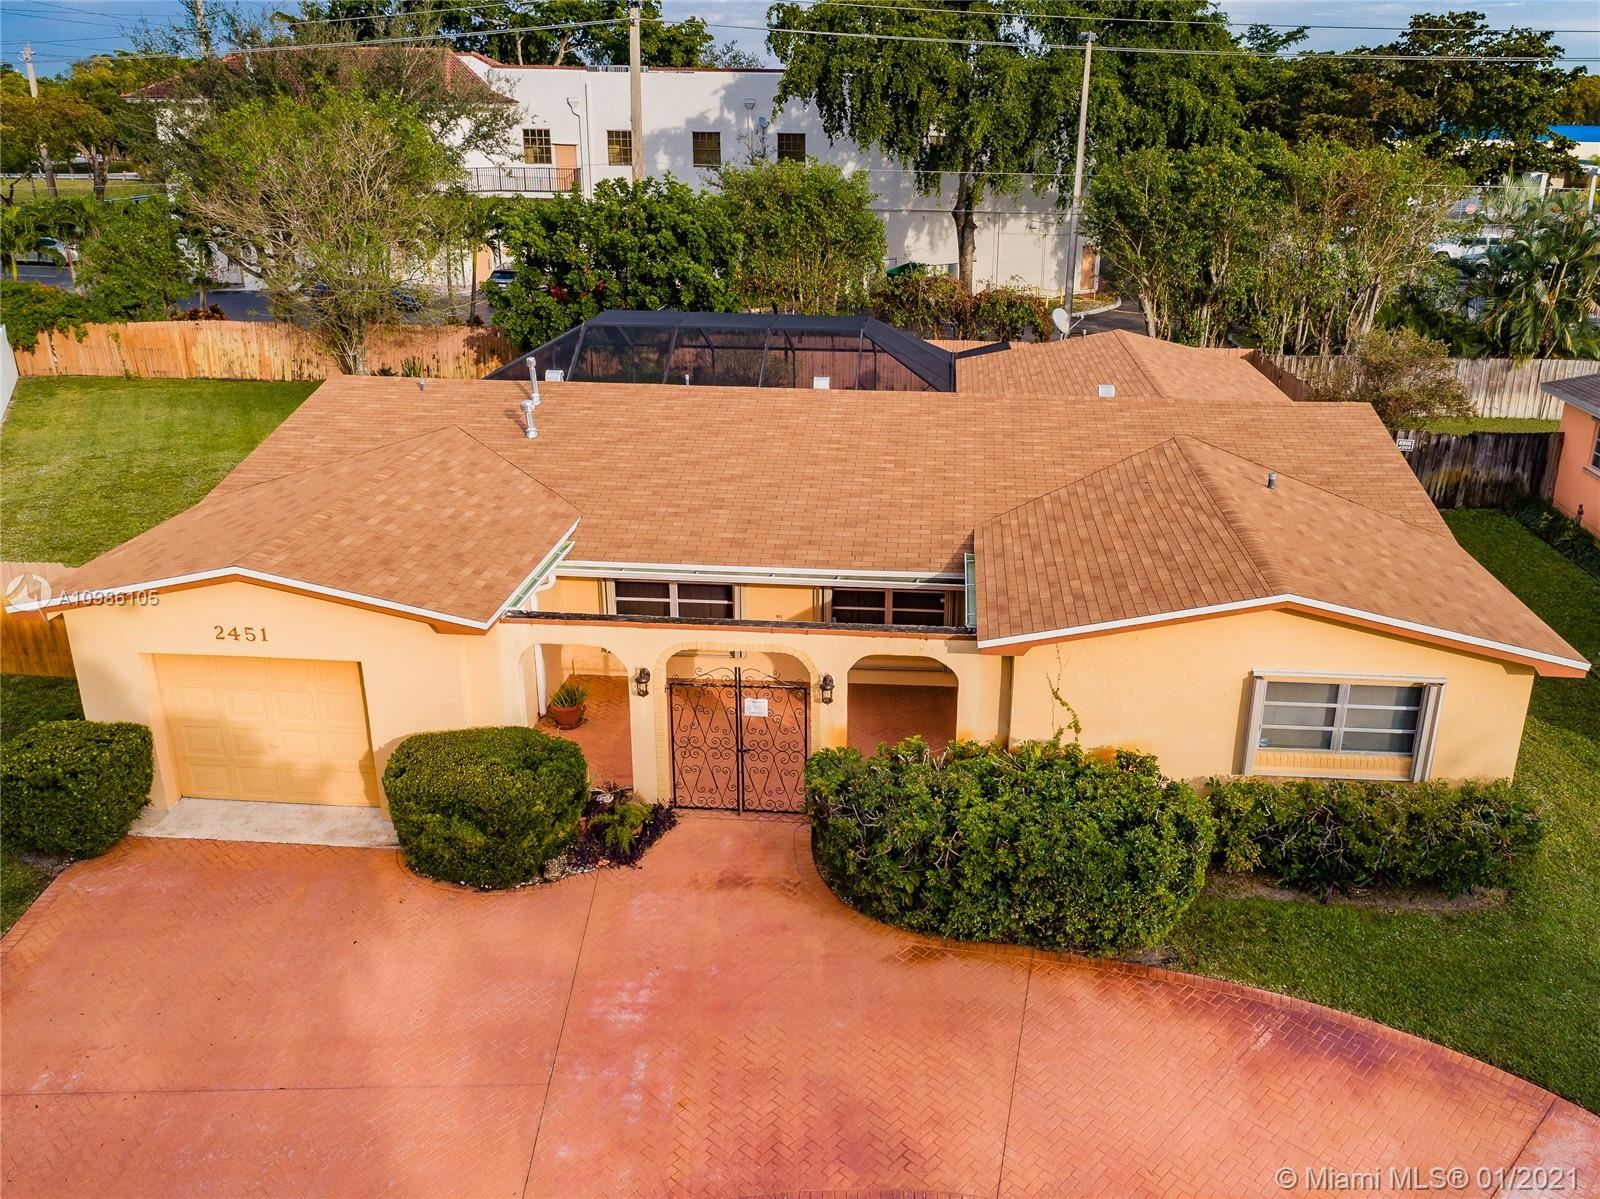 2451 NW 82nd Ave, Pembroke Pines, FL 33024 - #: A10986105